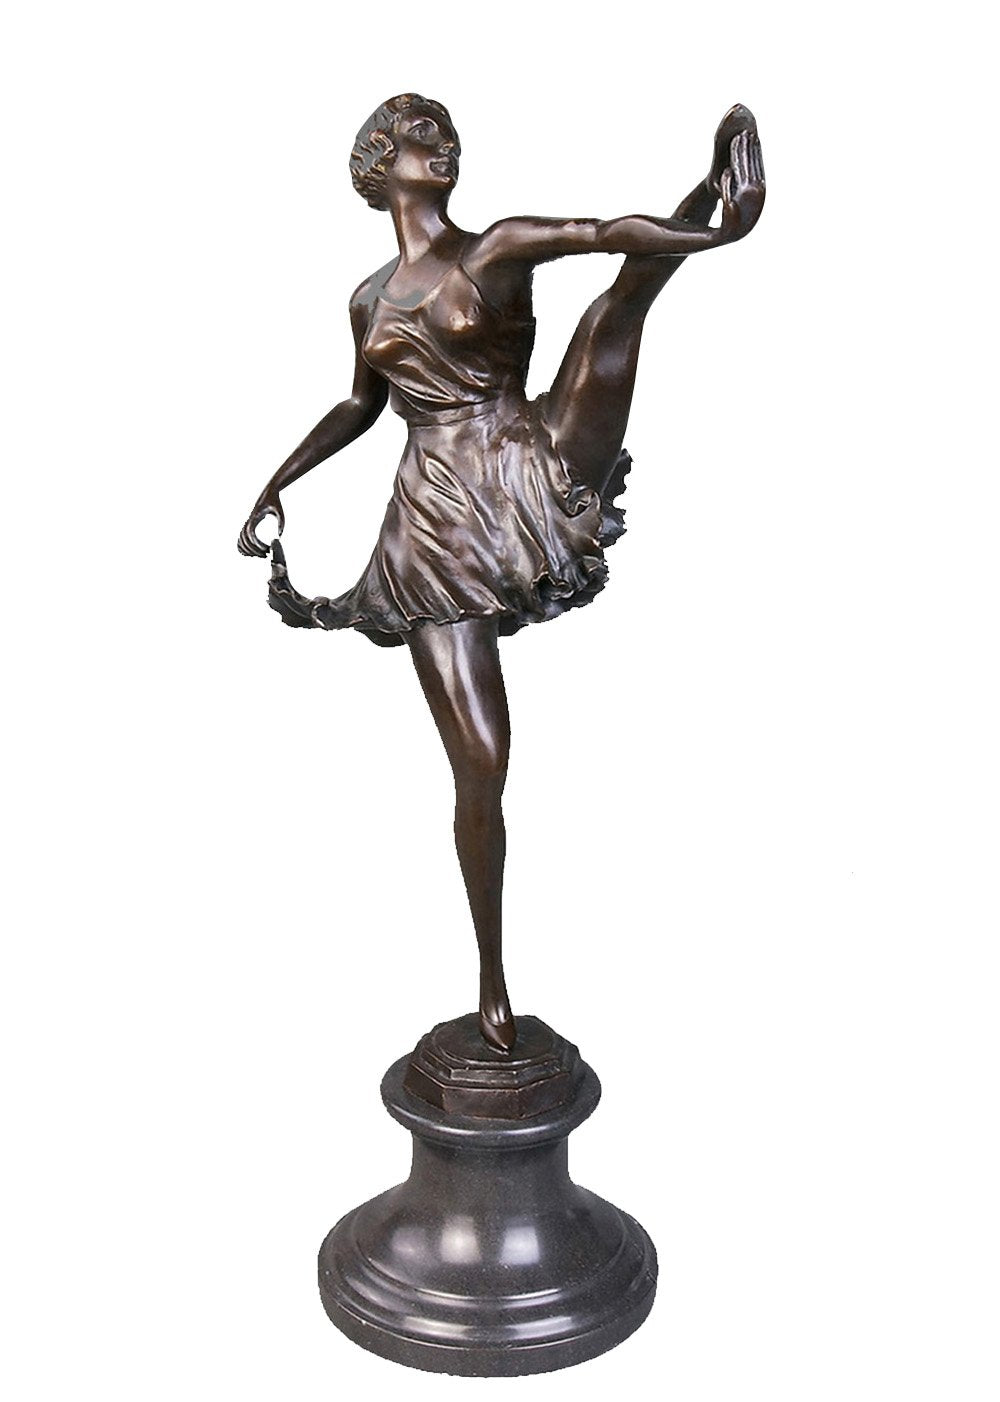 TPY-037 bronze sculpture